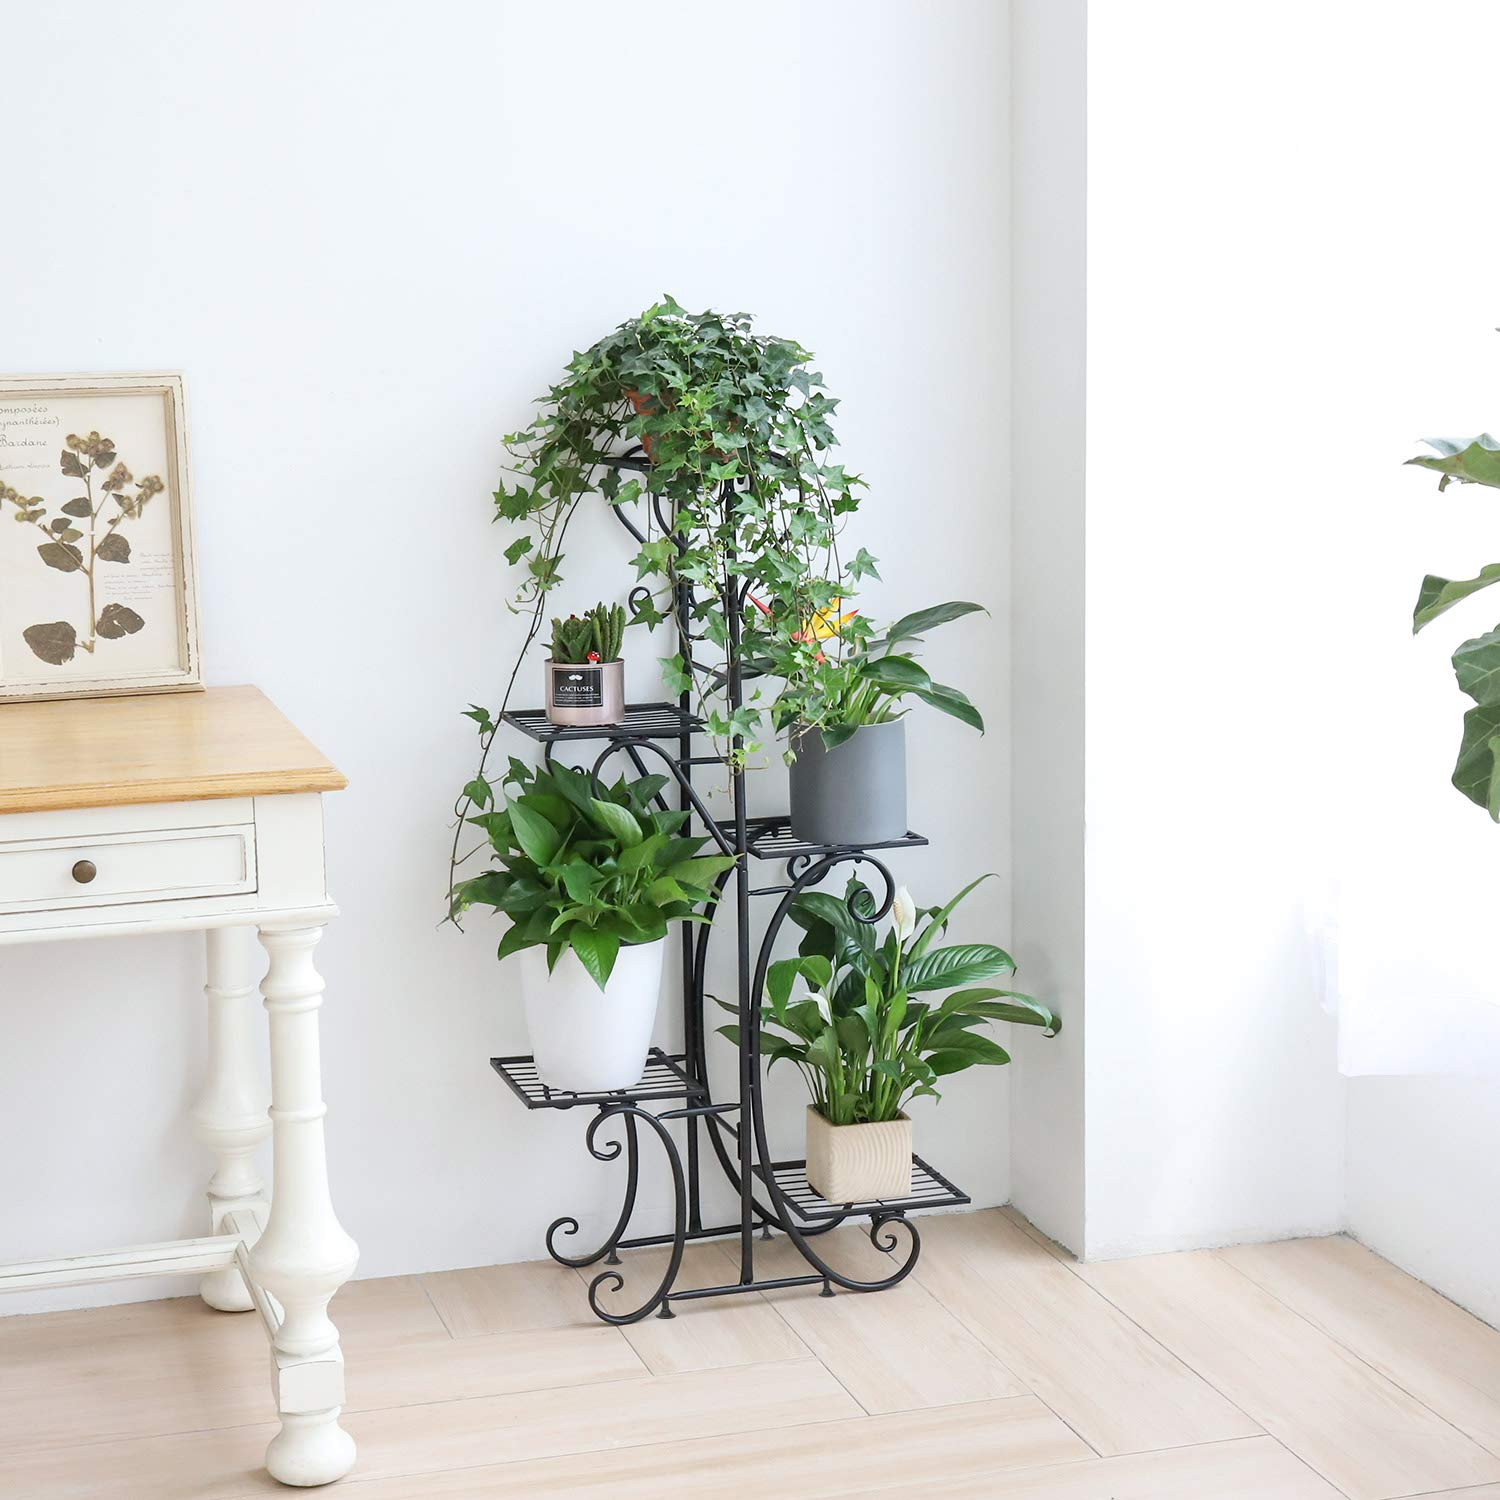 unho Plant Stand Indoor Outdoor Flower Stand Metal Plant Pot Holder Rack Flower Display Stand for Garden Patio Office Black 22.4 x 42